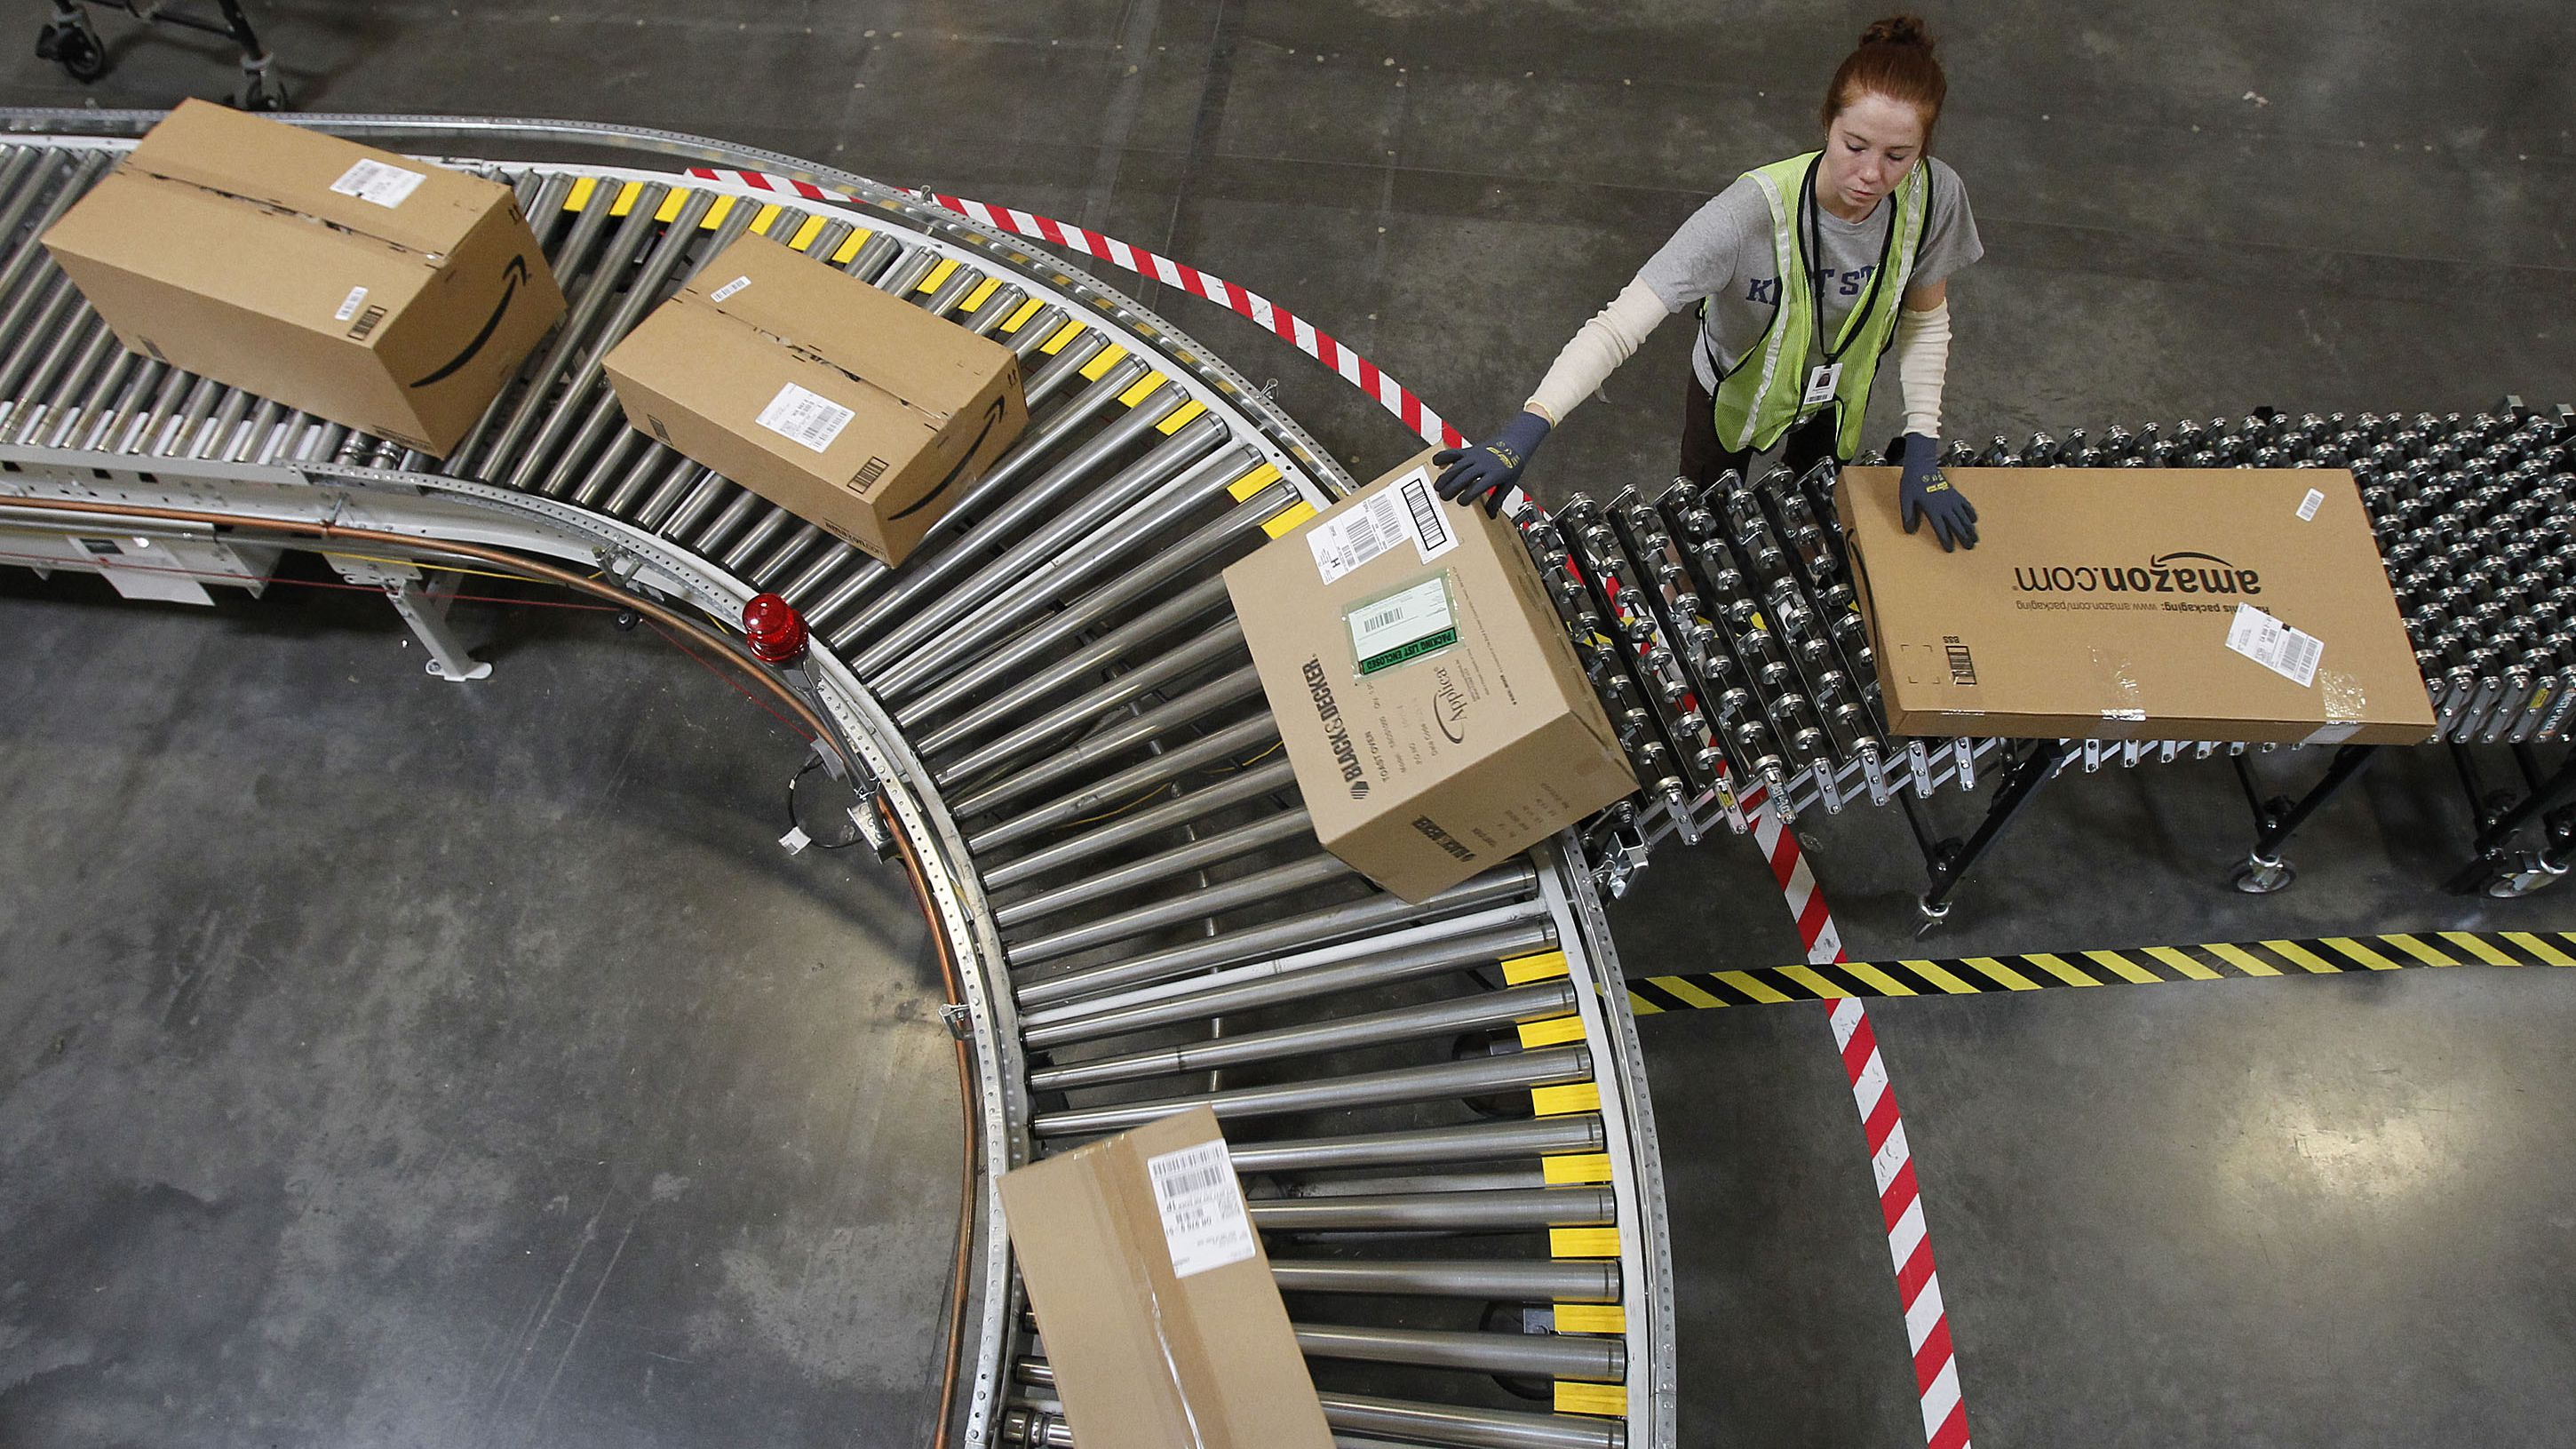 In this Nov. 11, 2010 photo, Katherine Braun sorts packages toward the right shipping area at an Amazon.com fulfillment center, in Goodyear, Ariz. (AP Photo/Ross D. Franklin)